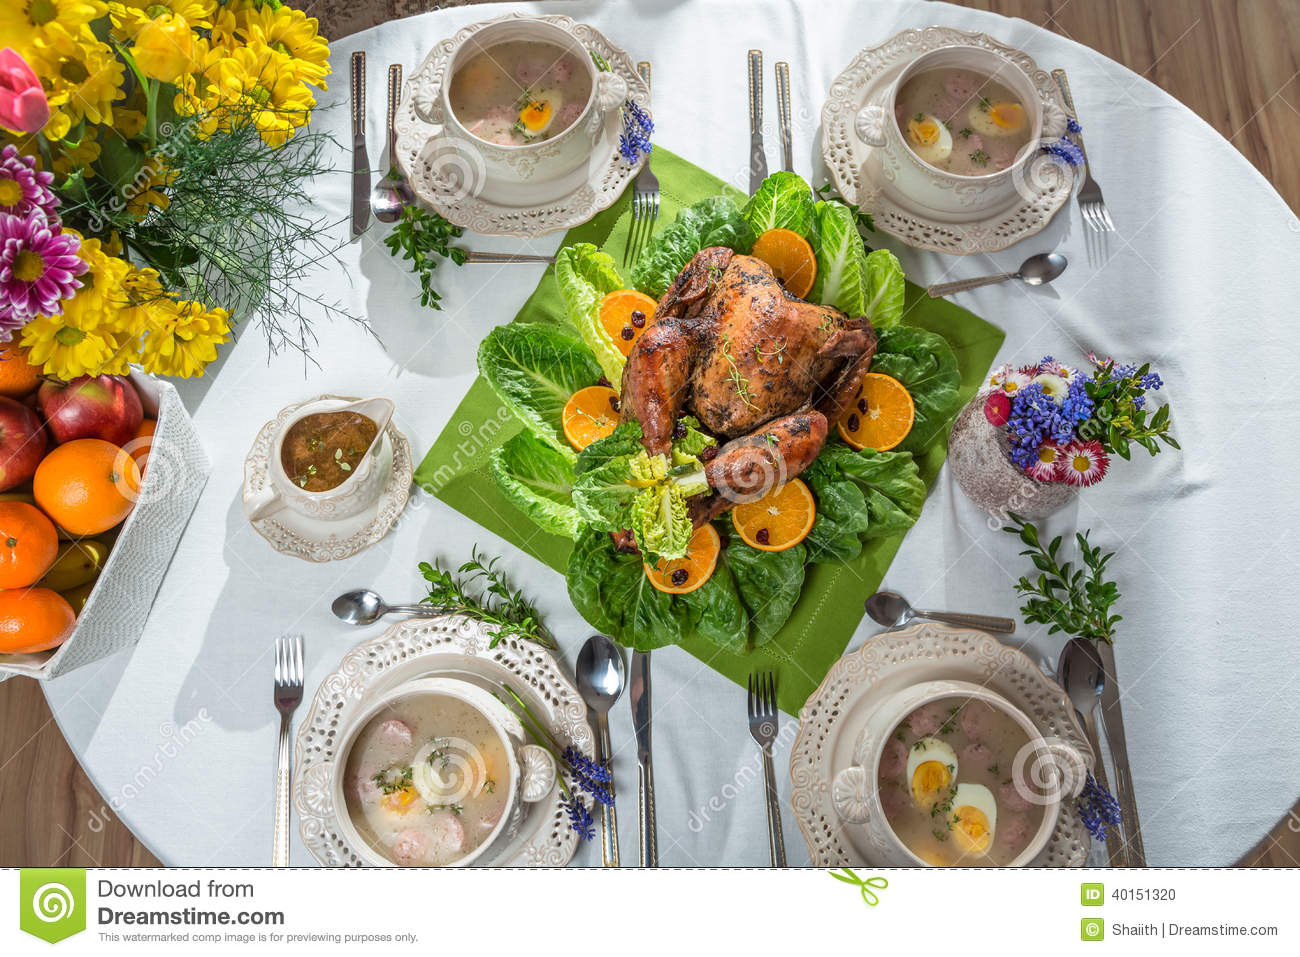 Roasted Turkey With Oranges Served On Lettuce Served With Soup Stock ...